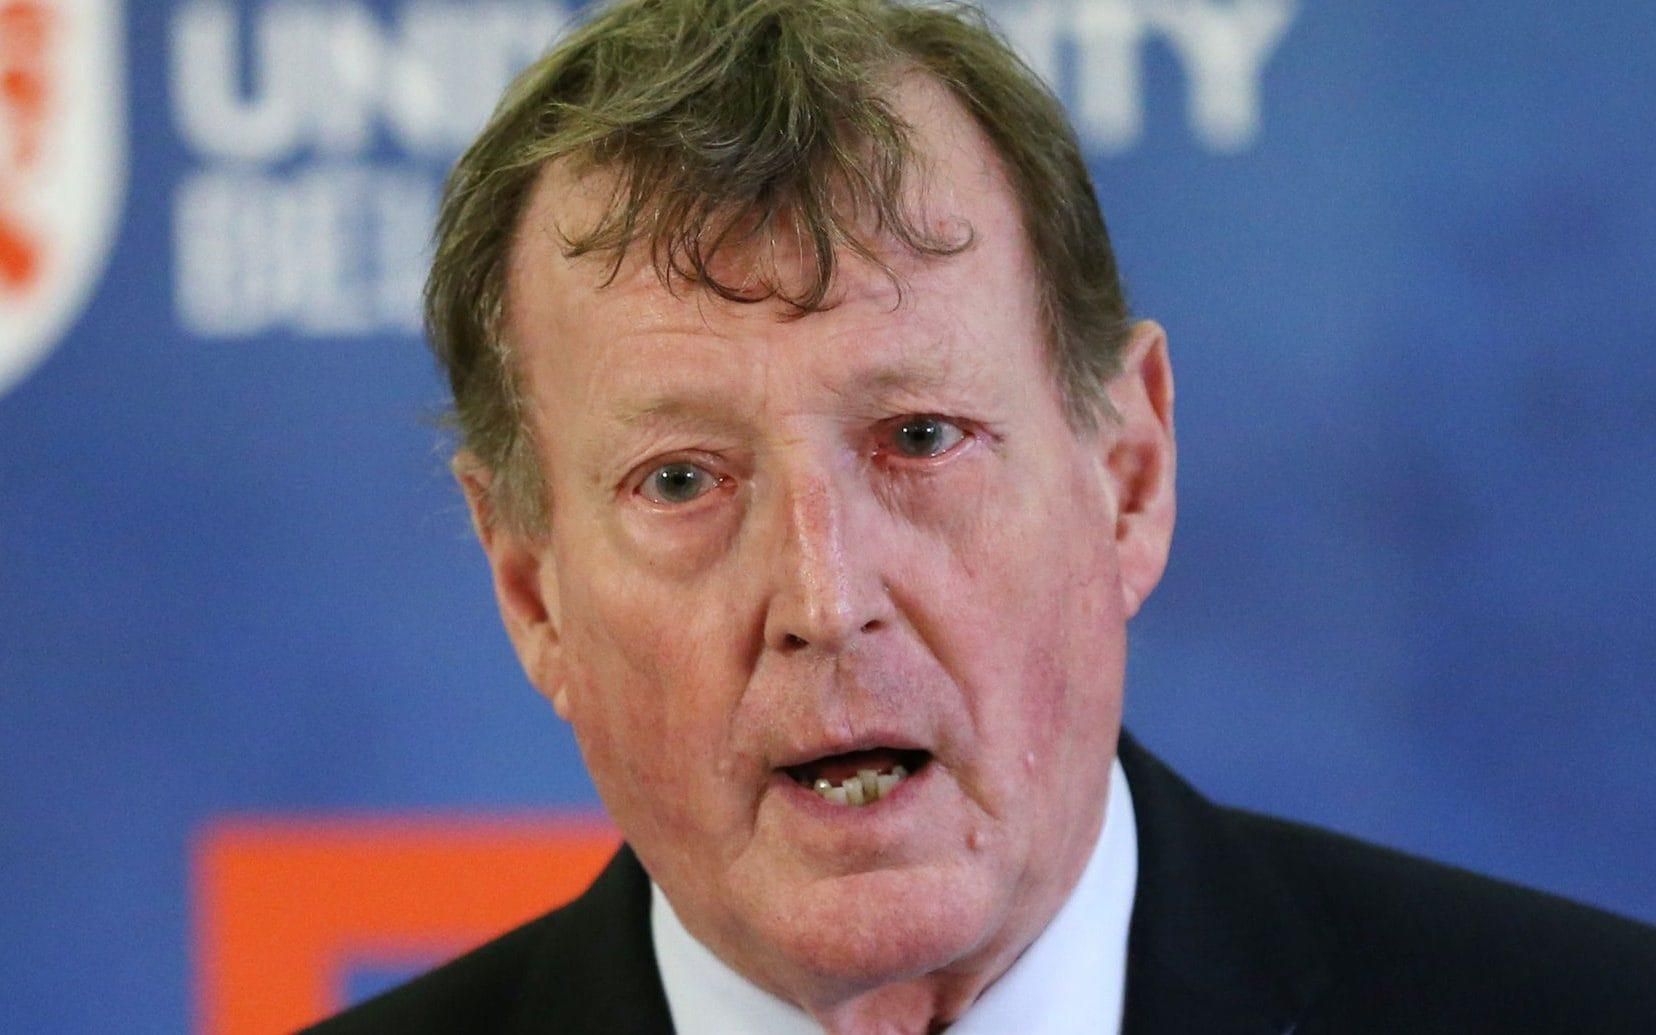 Exclusive: Architect of Good Friday Agreement joins legal challenge against Government over Northern Ireland protocol